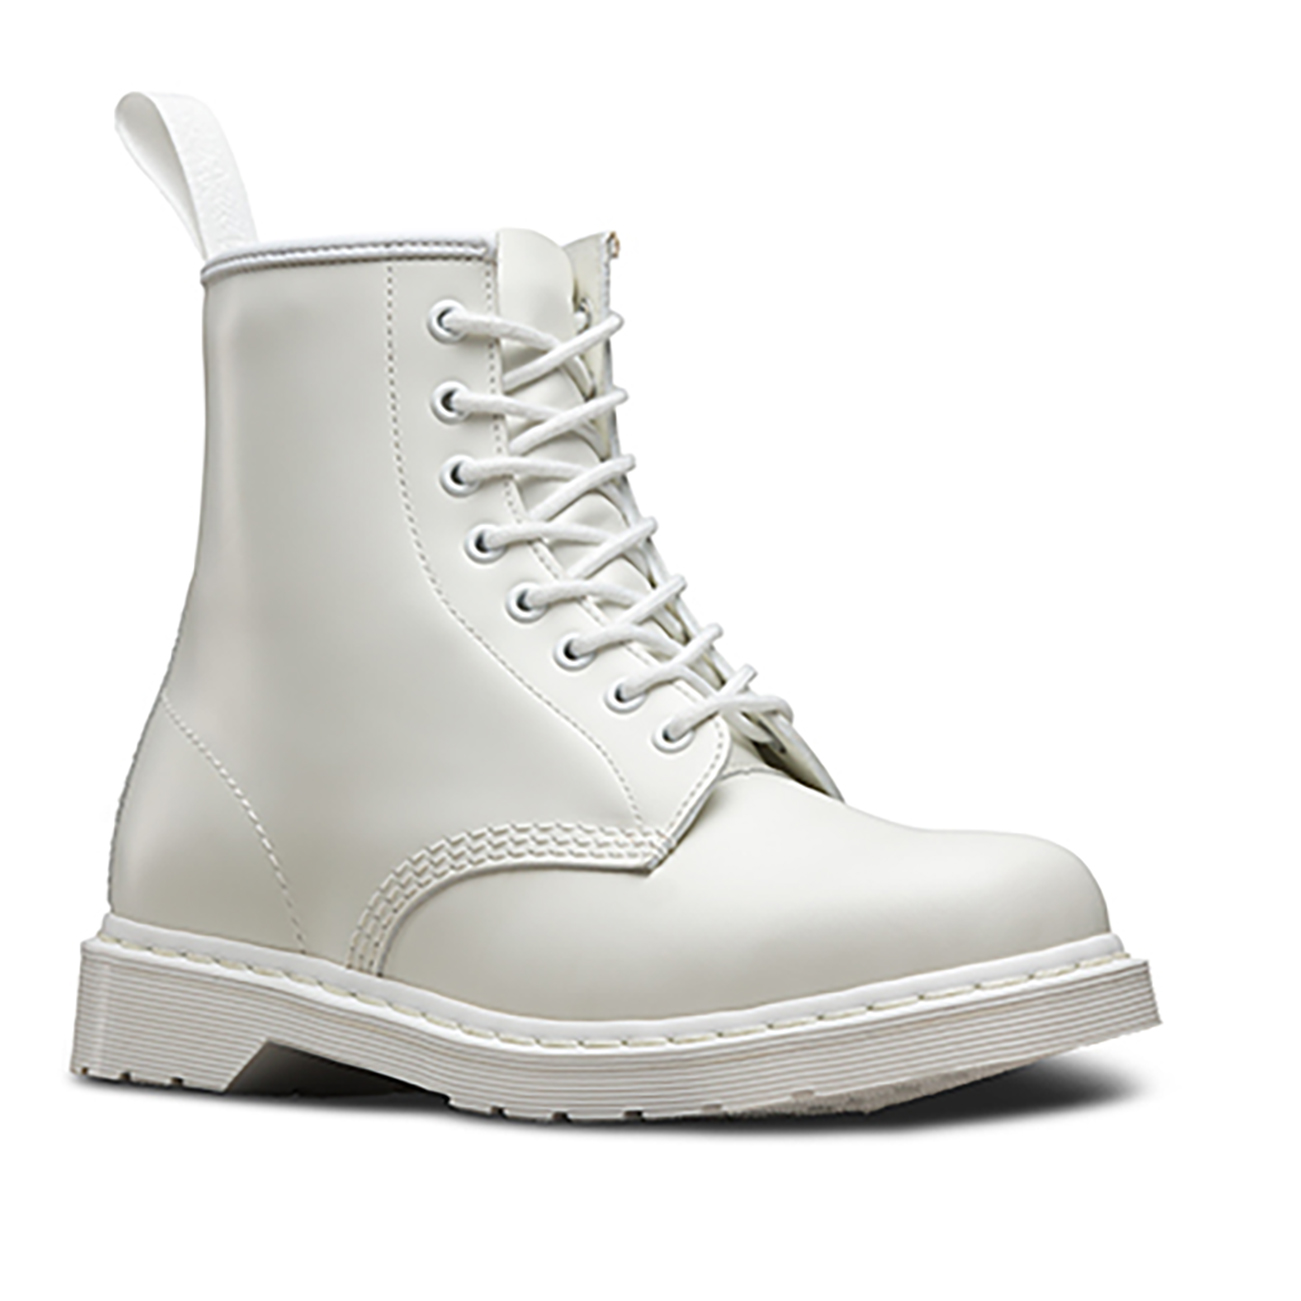 Unisex Adults Dr Martens 1460 Mono Smooth